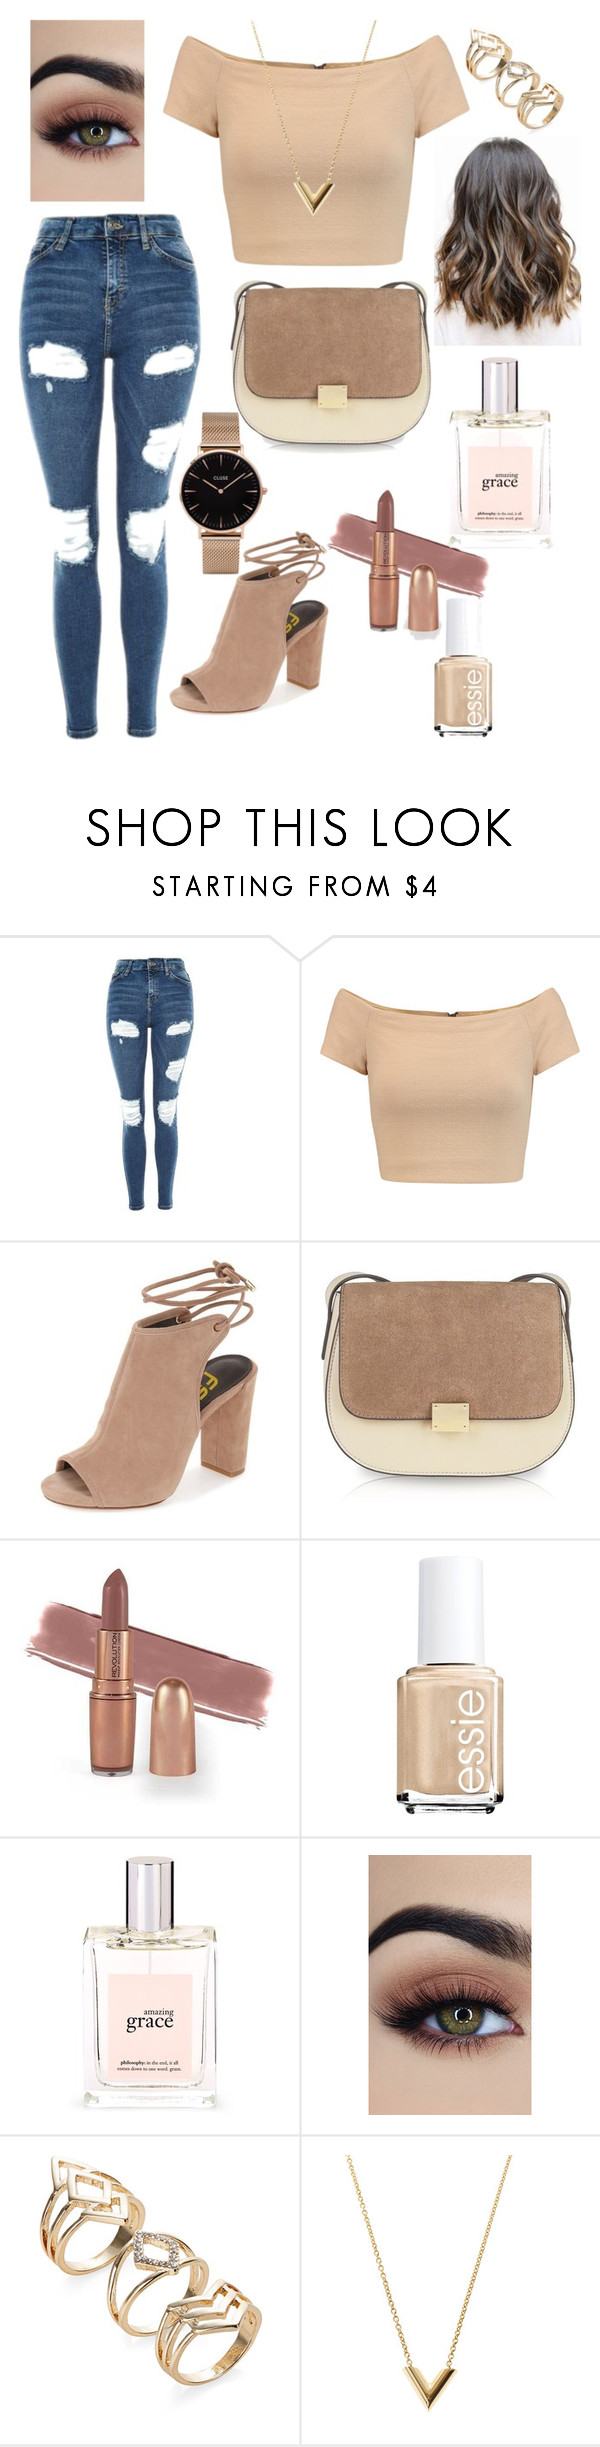 """Sans titre #6"" by amystyles-i ❤ liked on Polyvore featuring Topshop, Alice + Olivia, philosophy, Louis Vuitton and CLUSE"